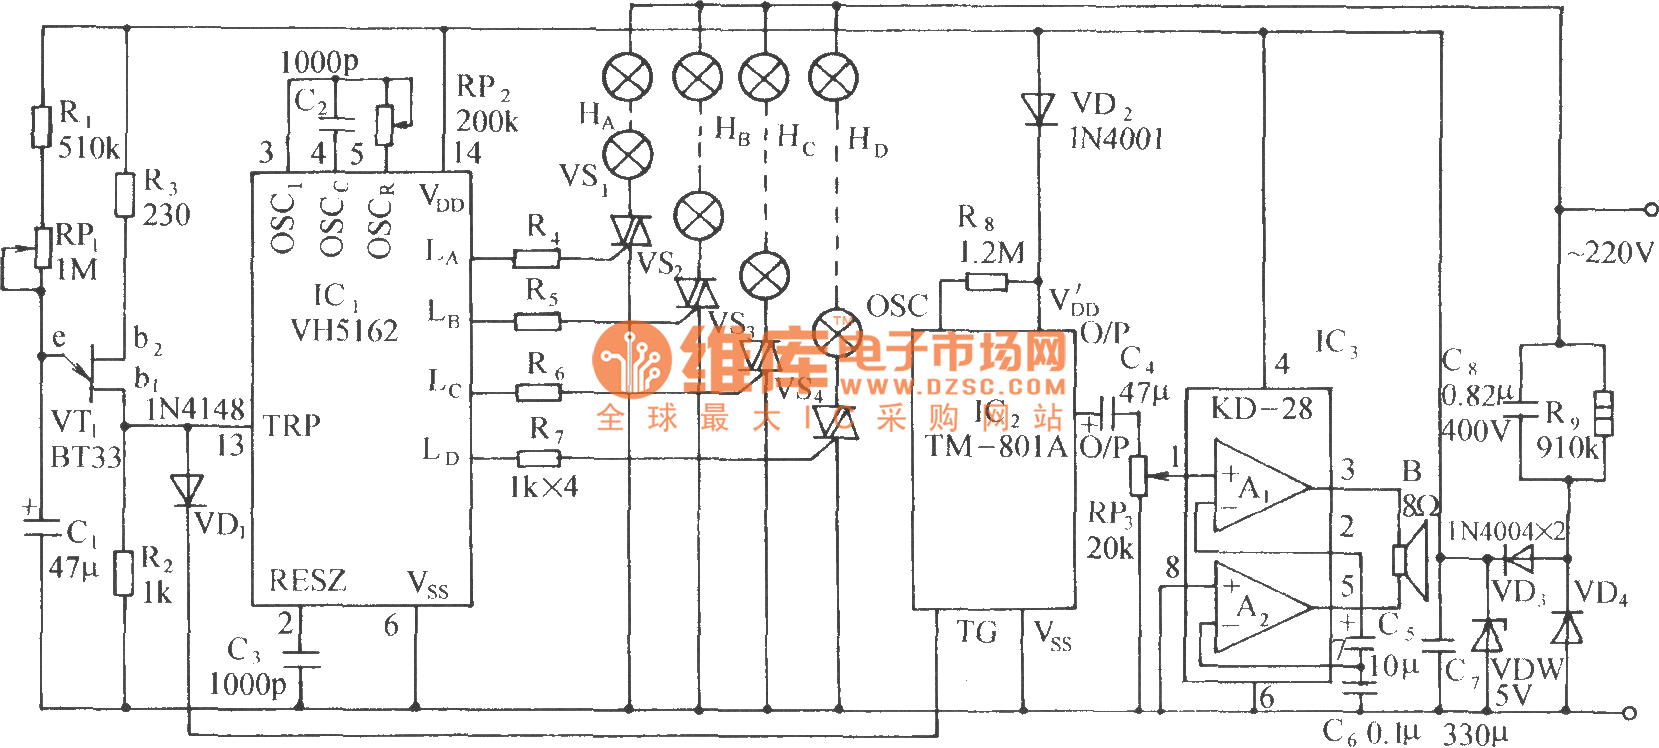 vh5162 festival color lamp with  u0026quot good luck u0026quot  voice control circuit - control circuit